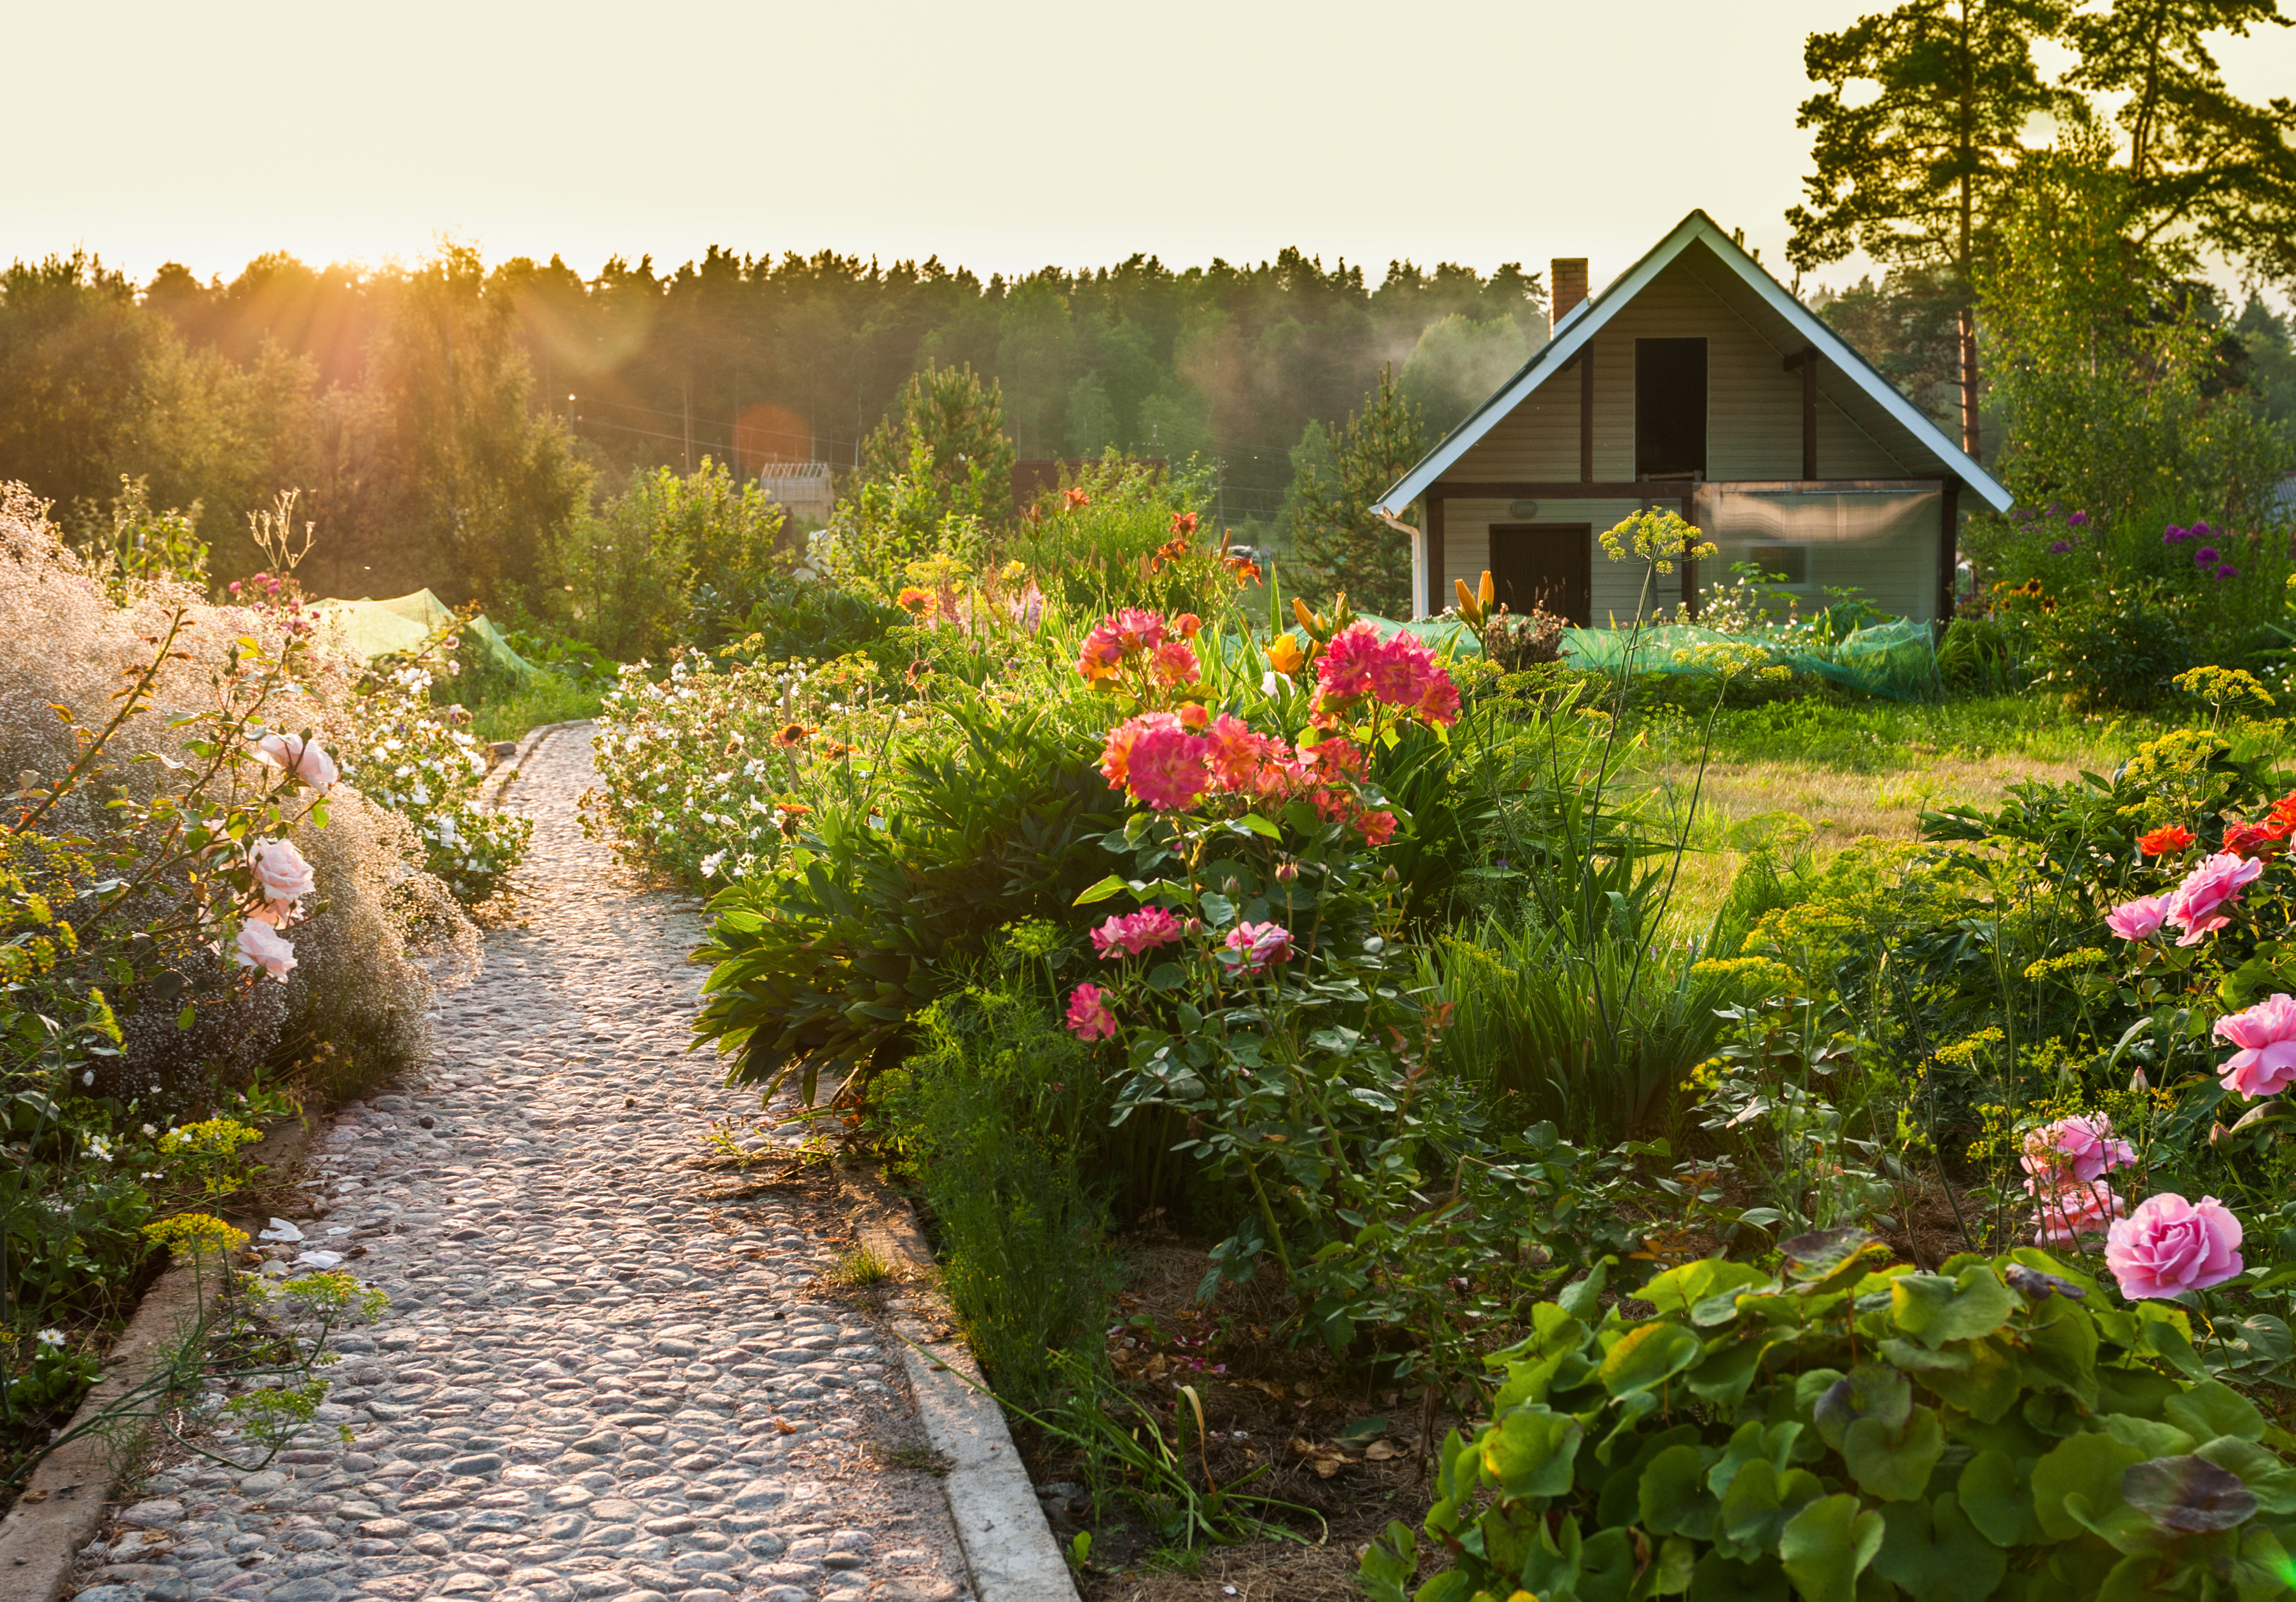 three-tips-for-planning-the-perfect-garden-tour-vacation-1